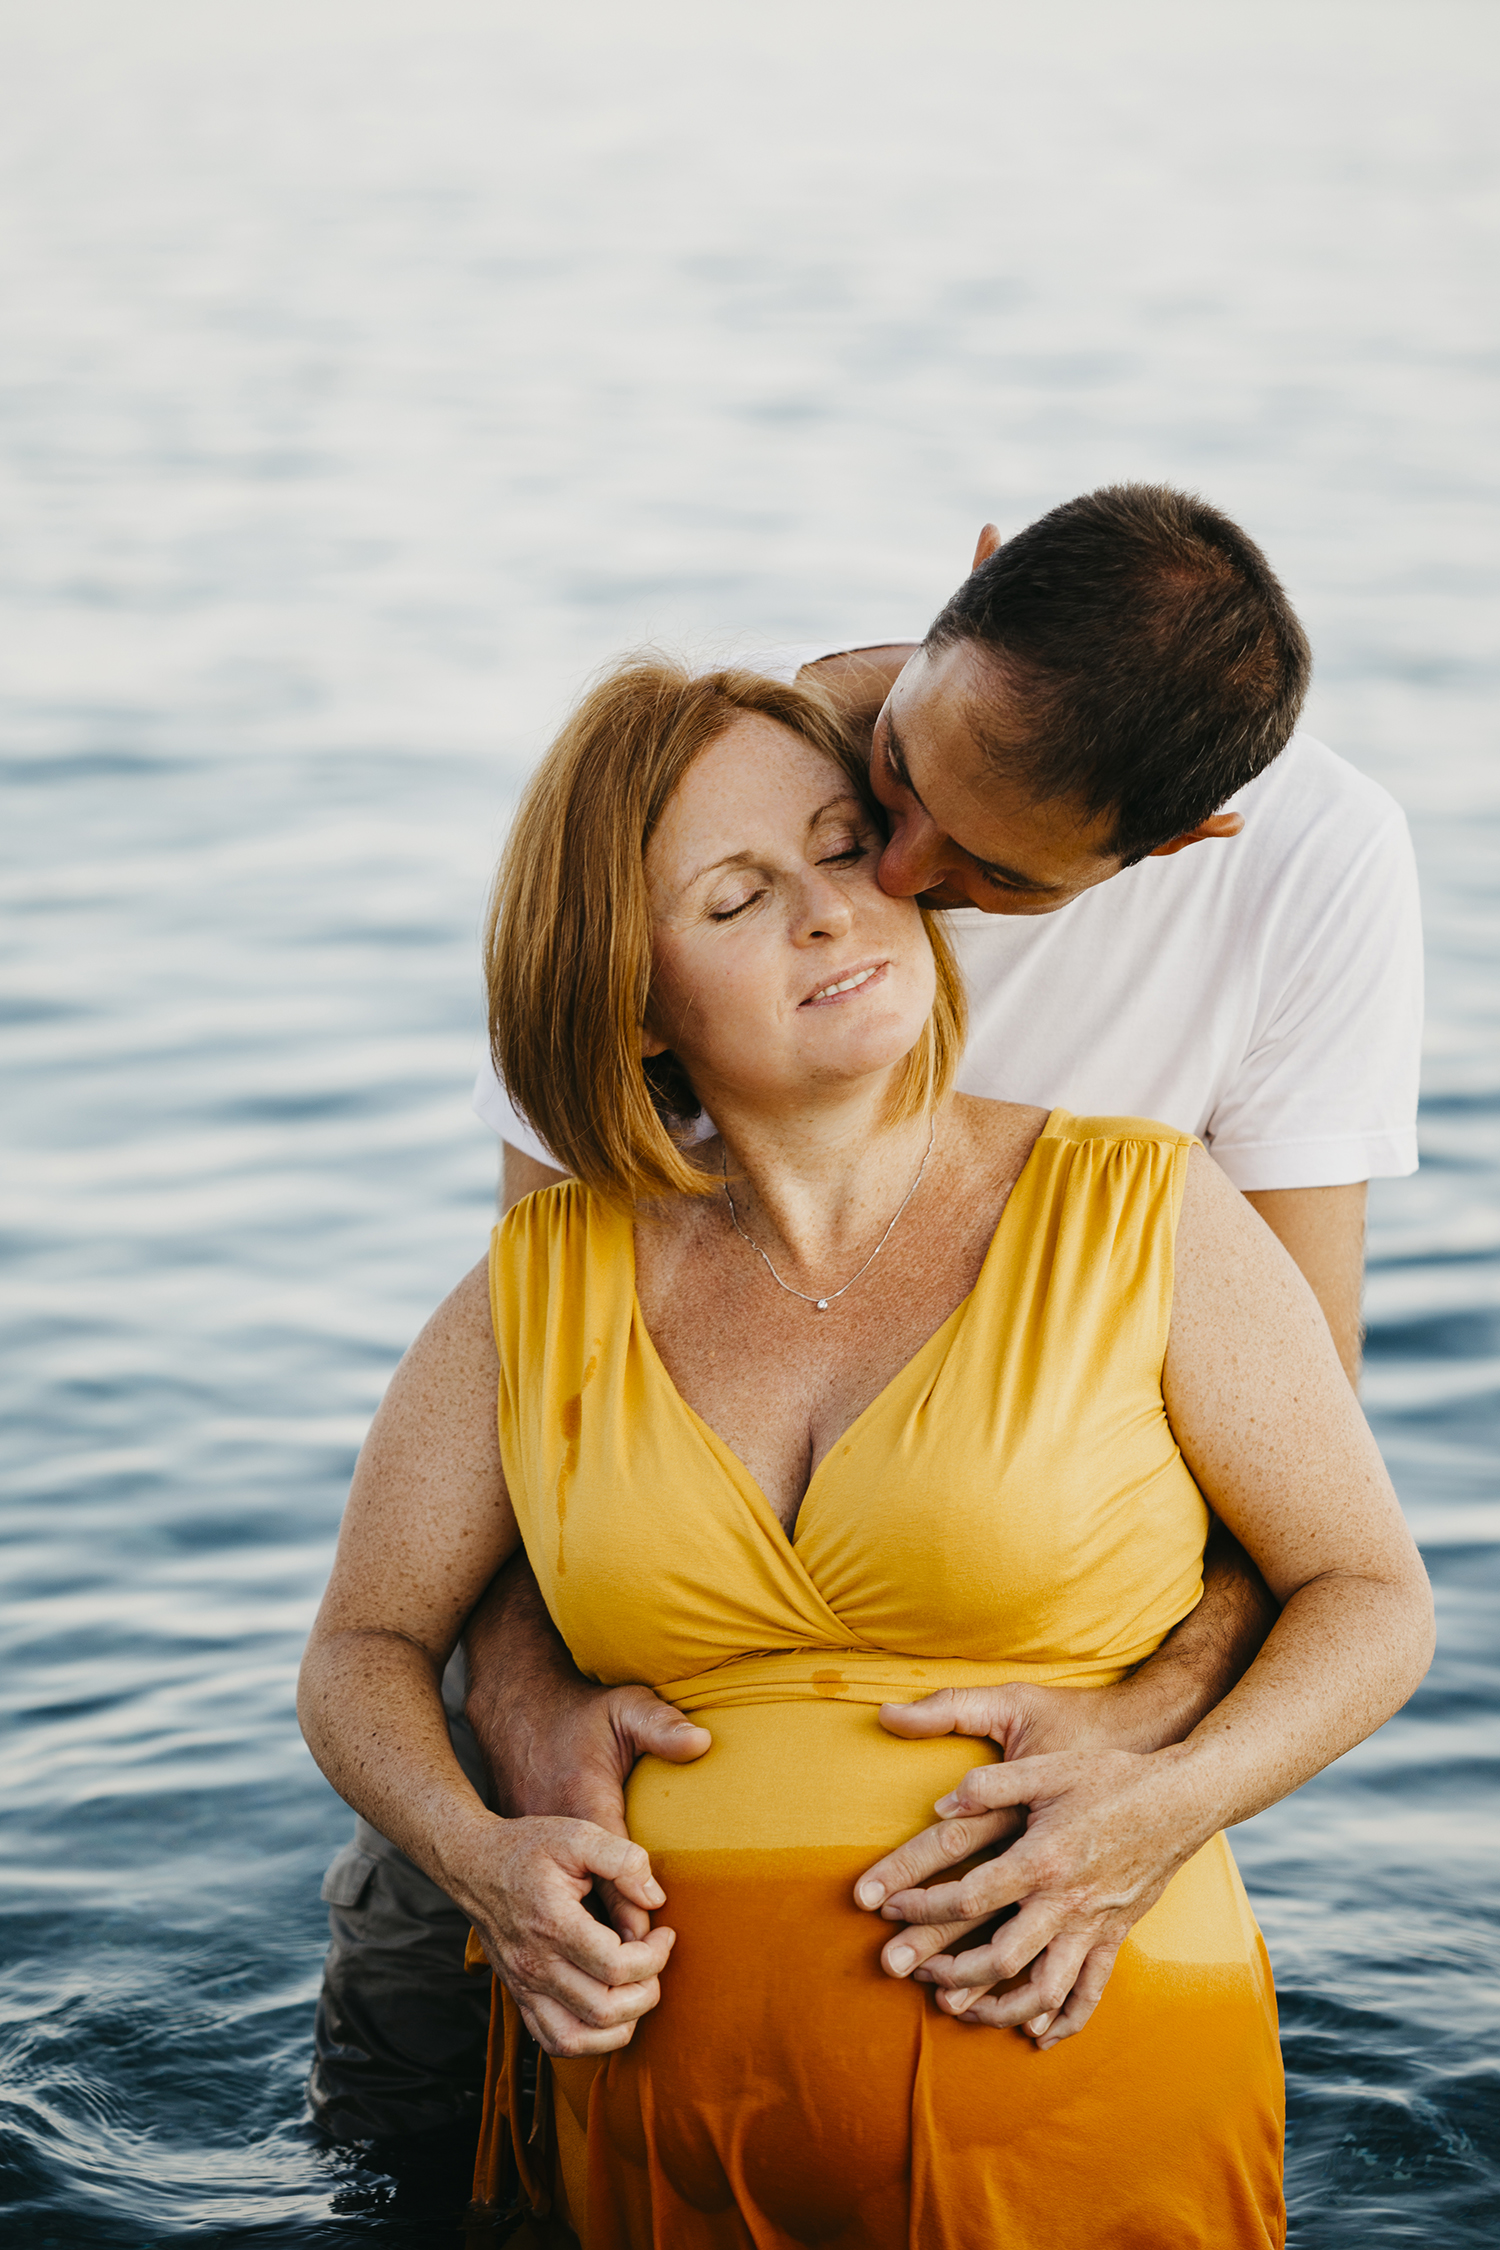 Maternity photographer in Deiva Marina, Italy. Mom and dad kissing in the water. Rebecca Rinaldi Photography. Family lifestyle photographer in Italy.